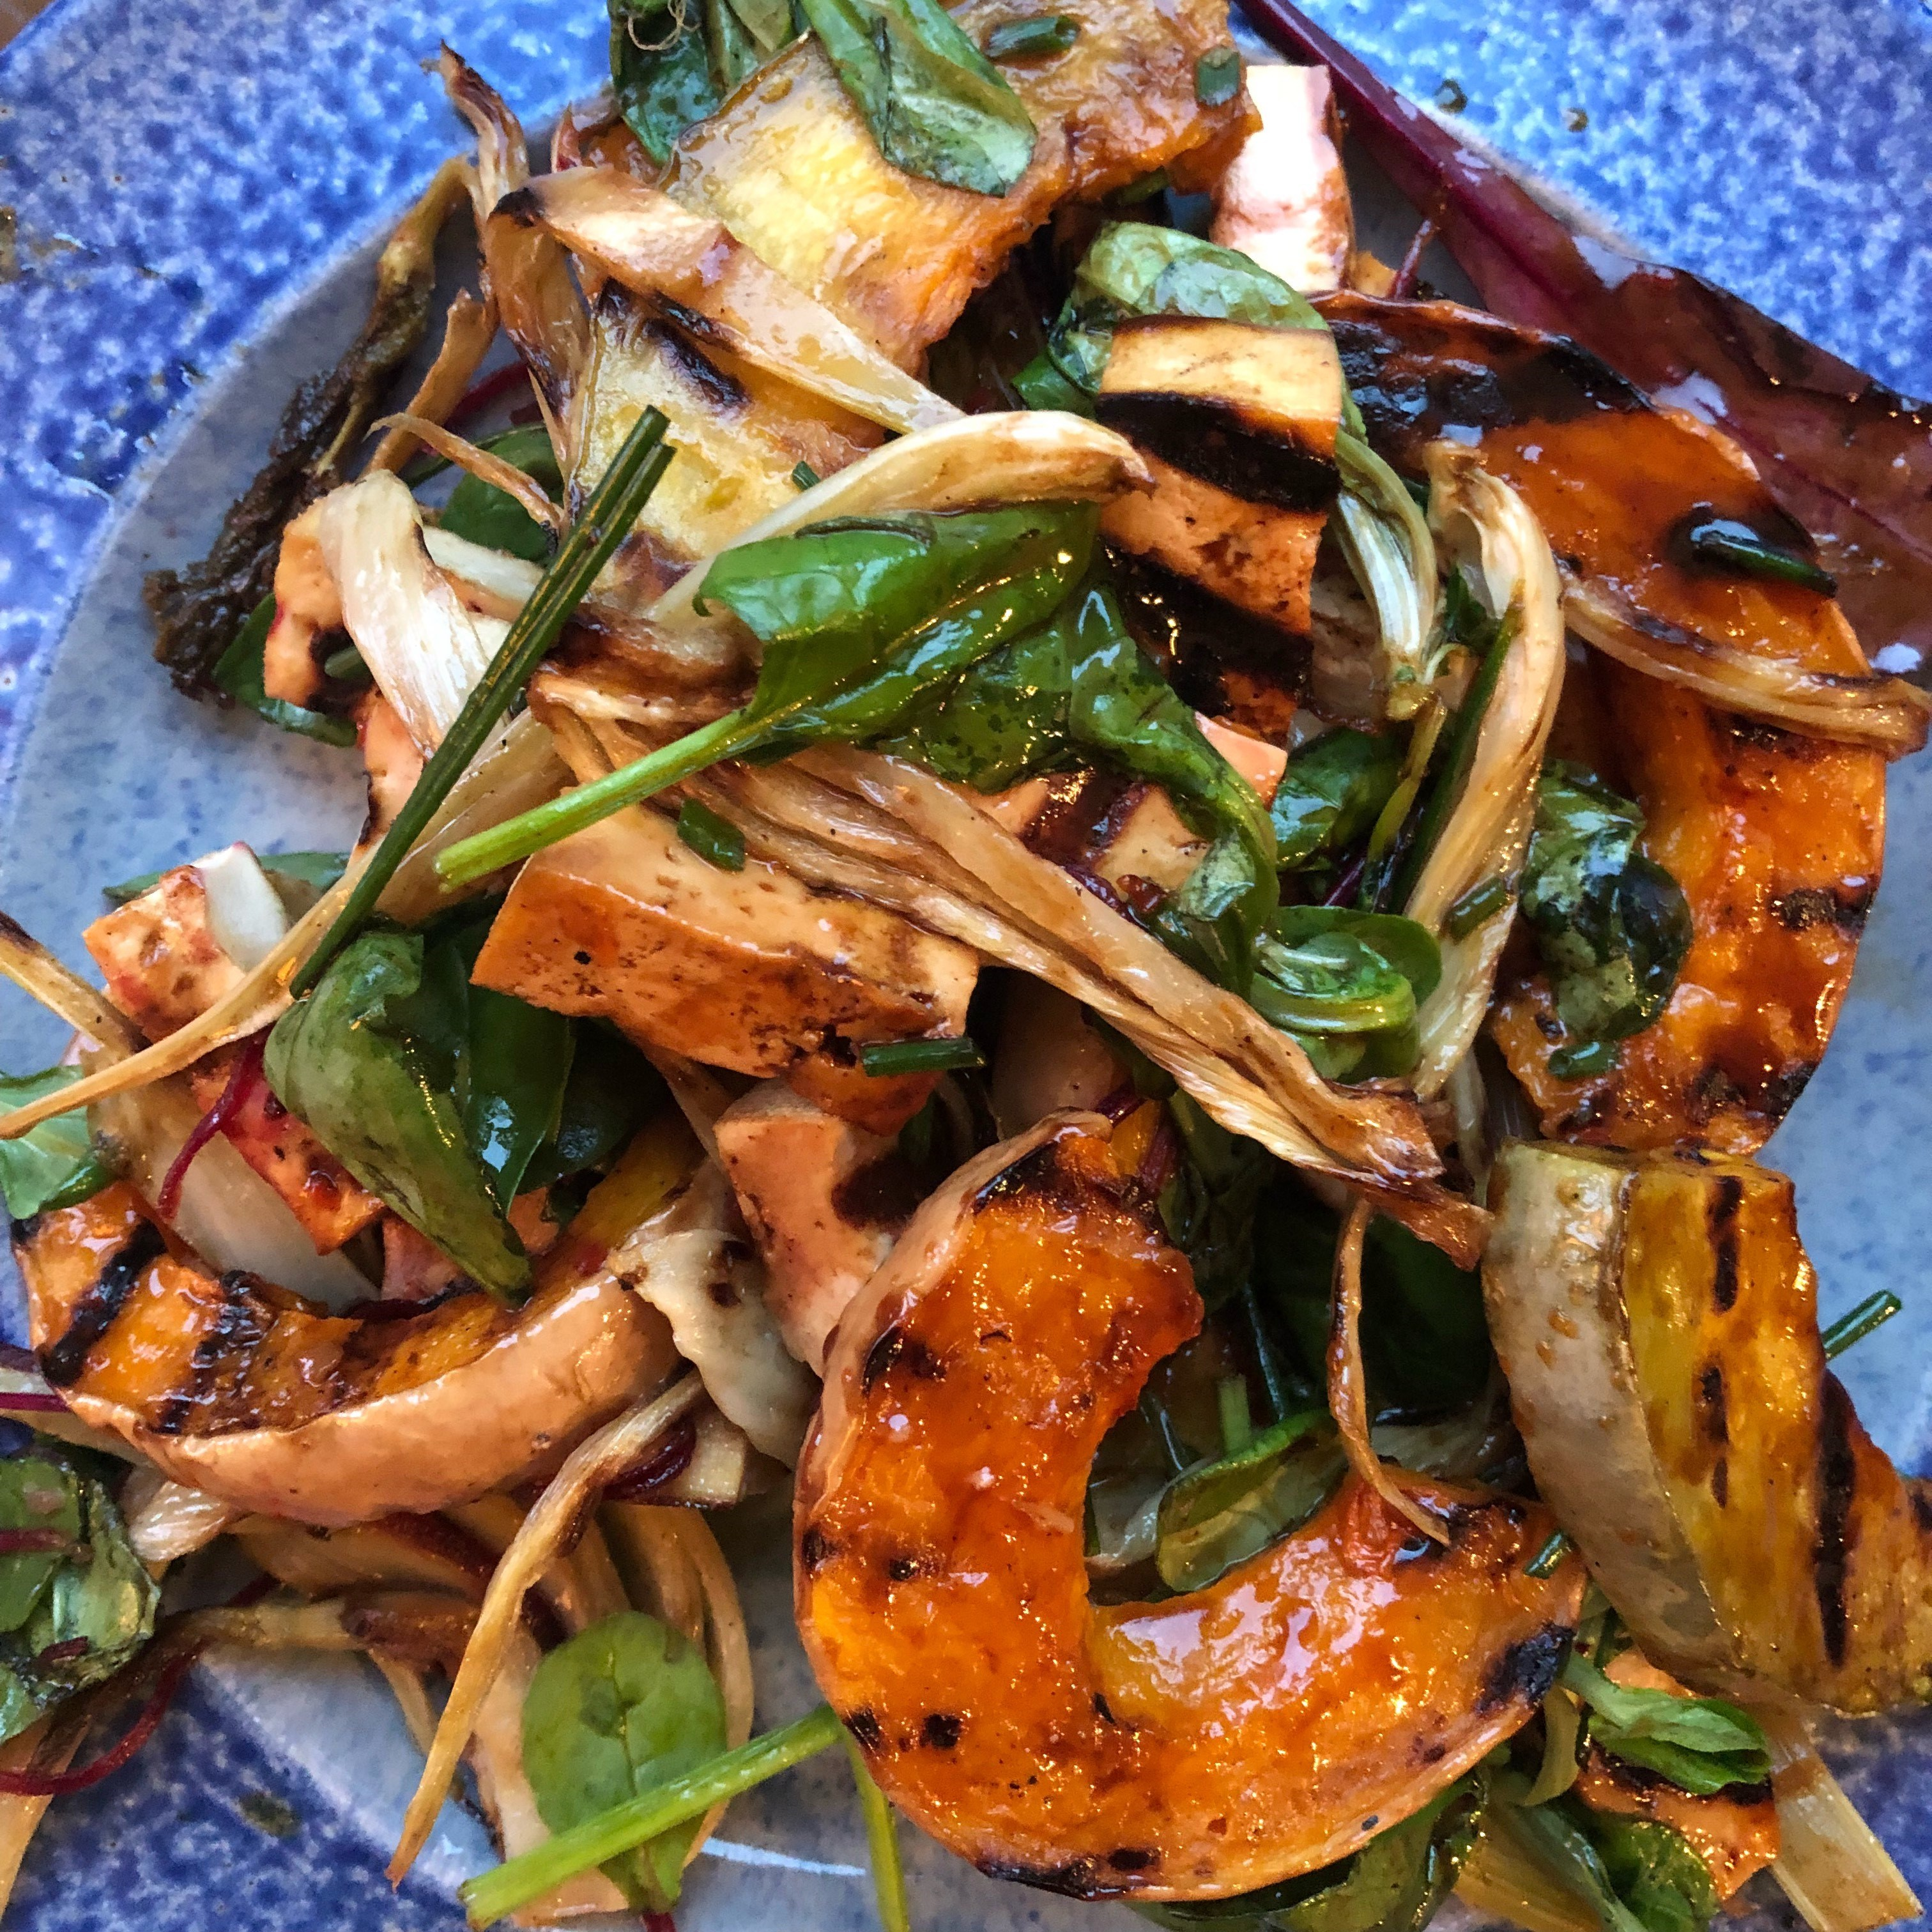 Griddled Squash, Fennel and Smoked Tofu